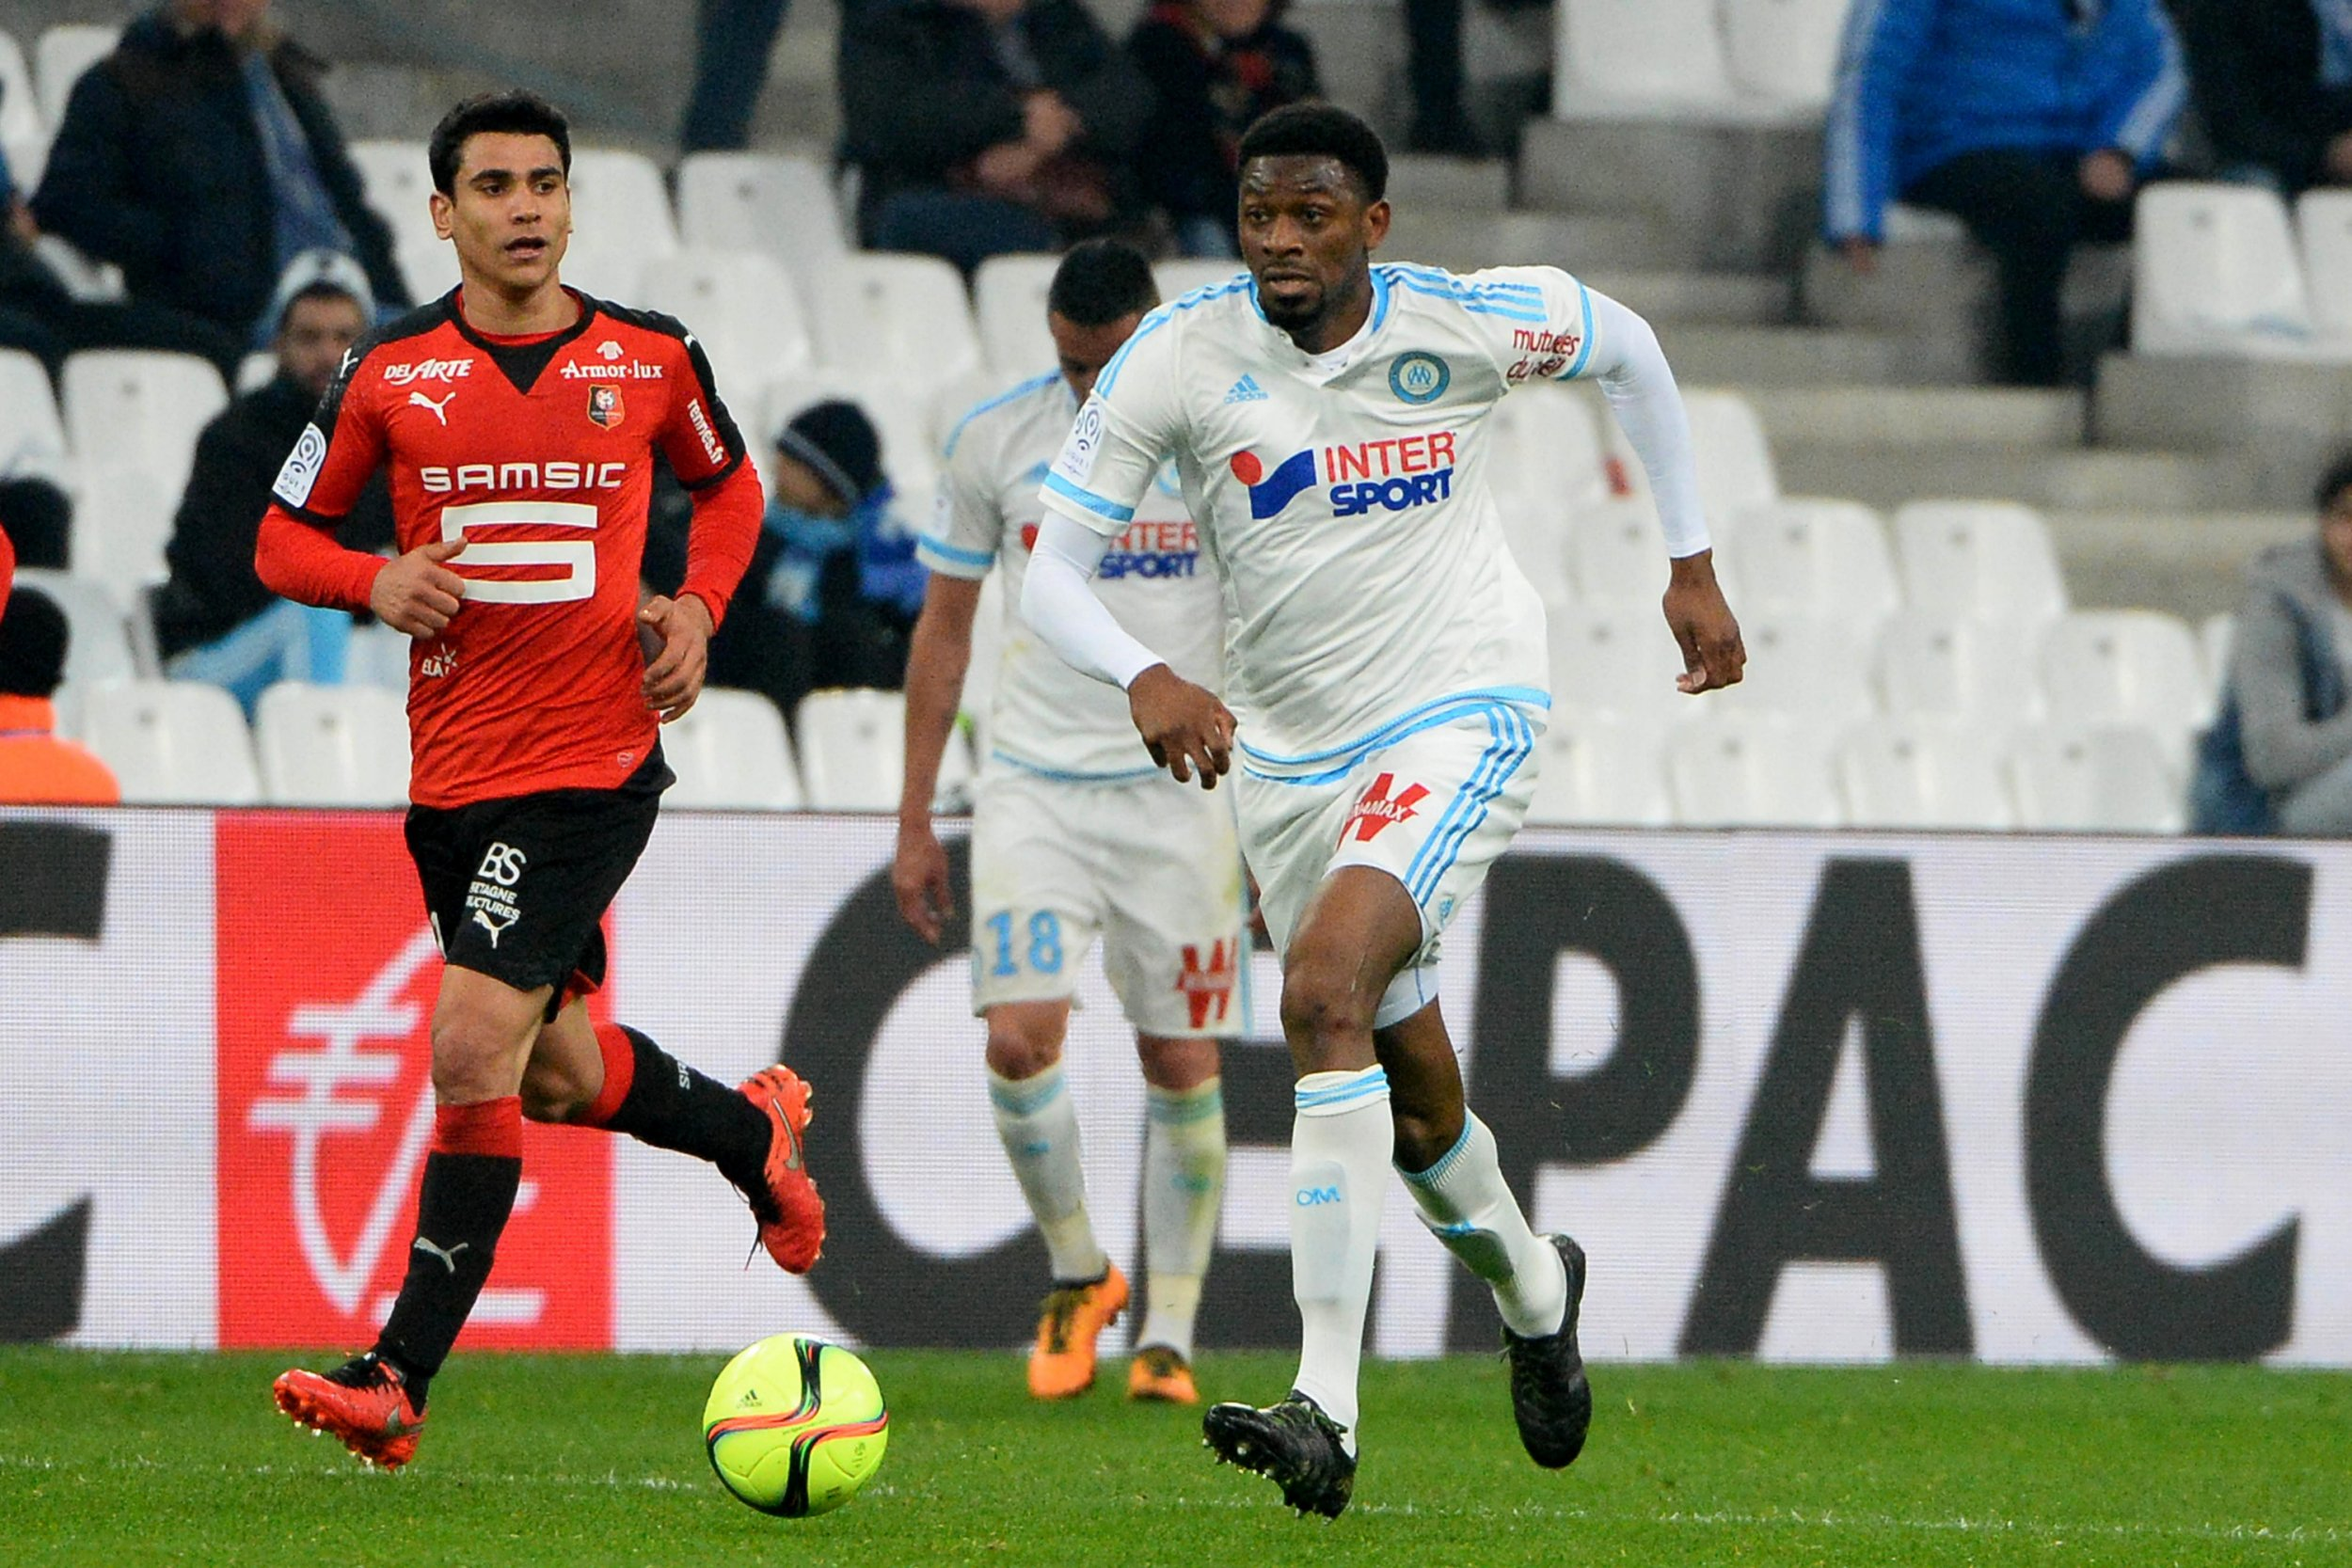 Former Arsenal midfielder Abou Diaby makes first Marseille appearance after 18 months out injured